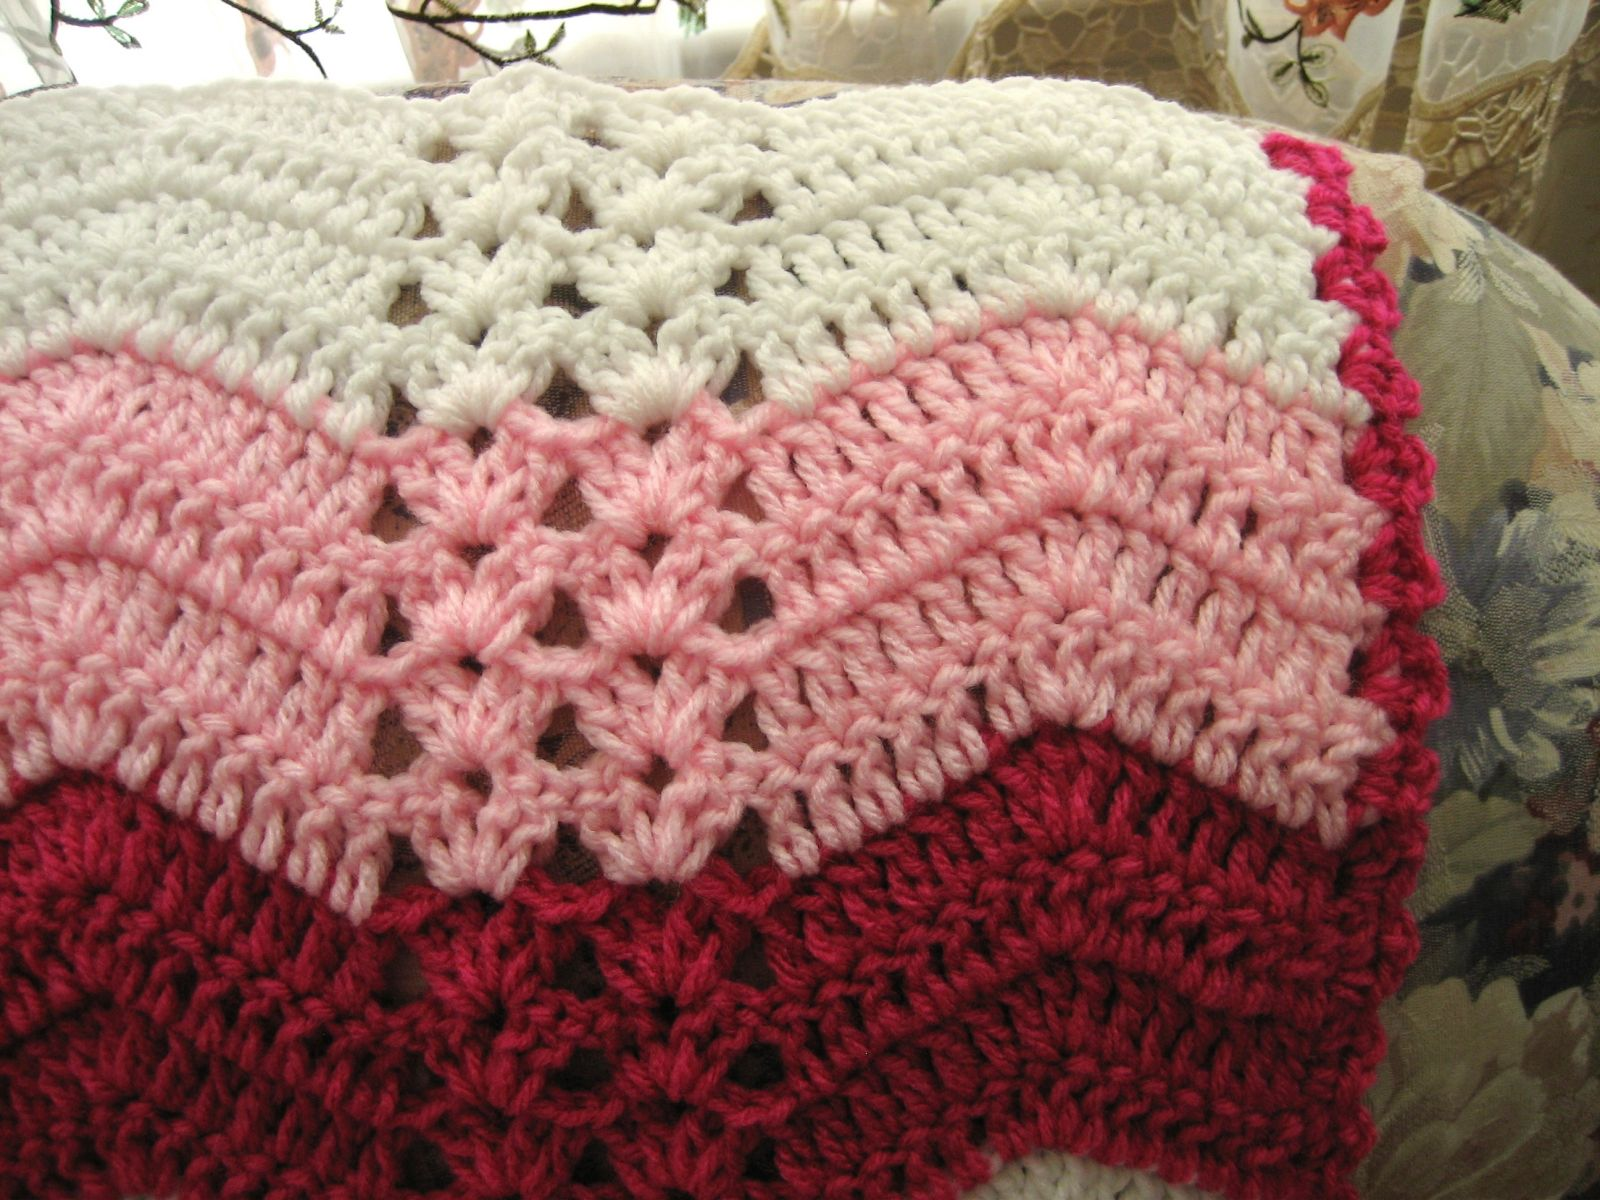 Double Crochet Ripple Baby Afghan Pattern : Ripple Crochet Pattern Related Keywords & Suggestions ...